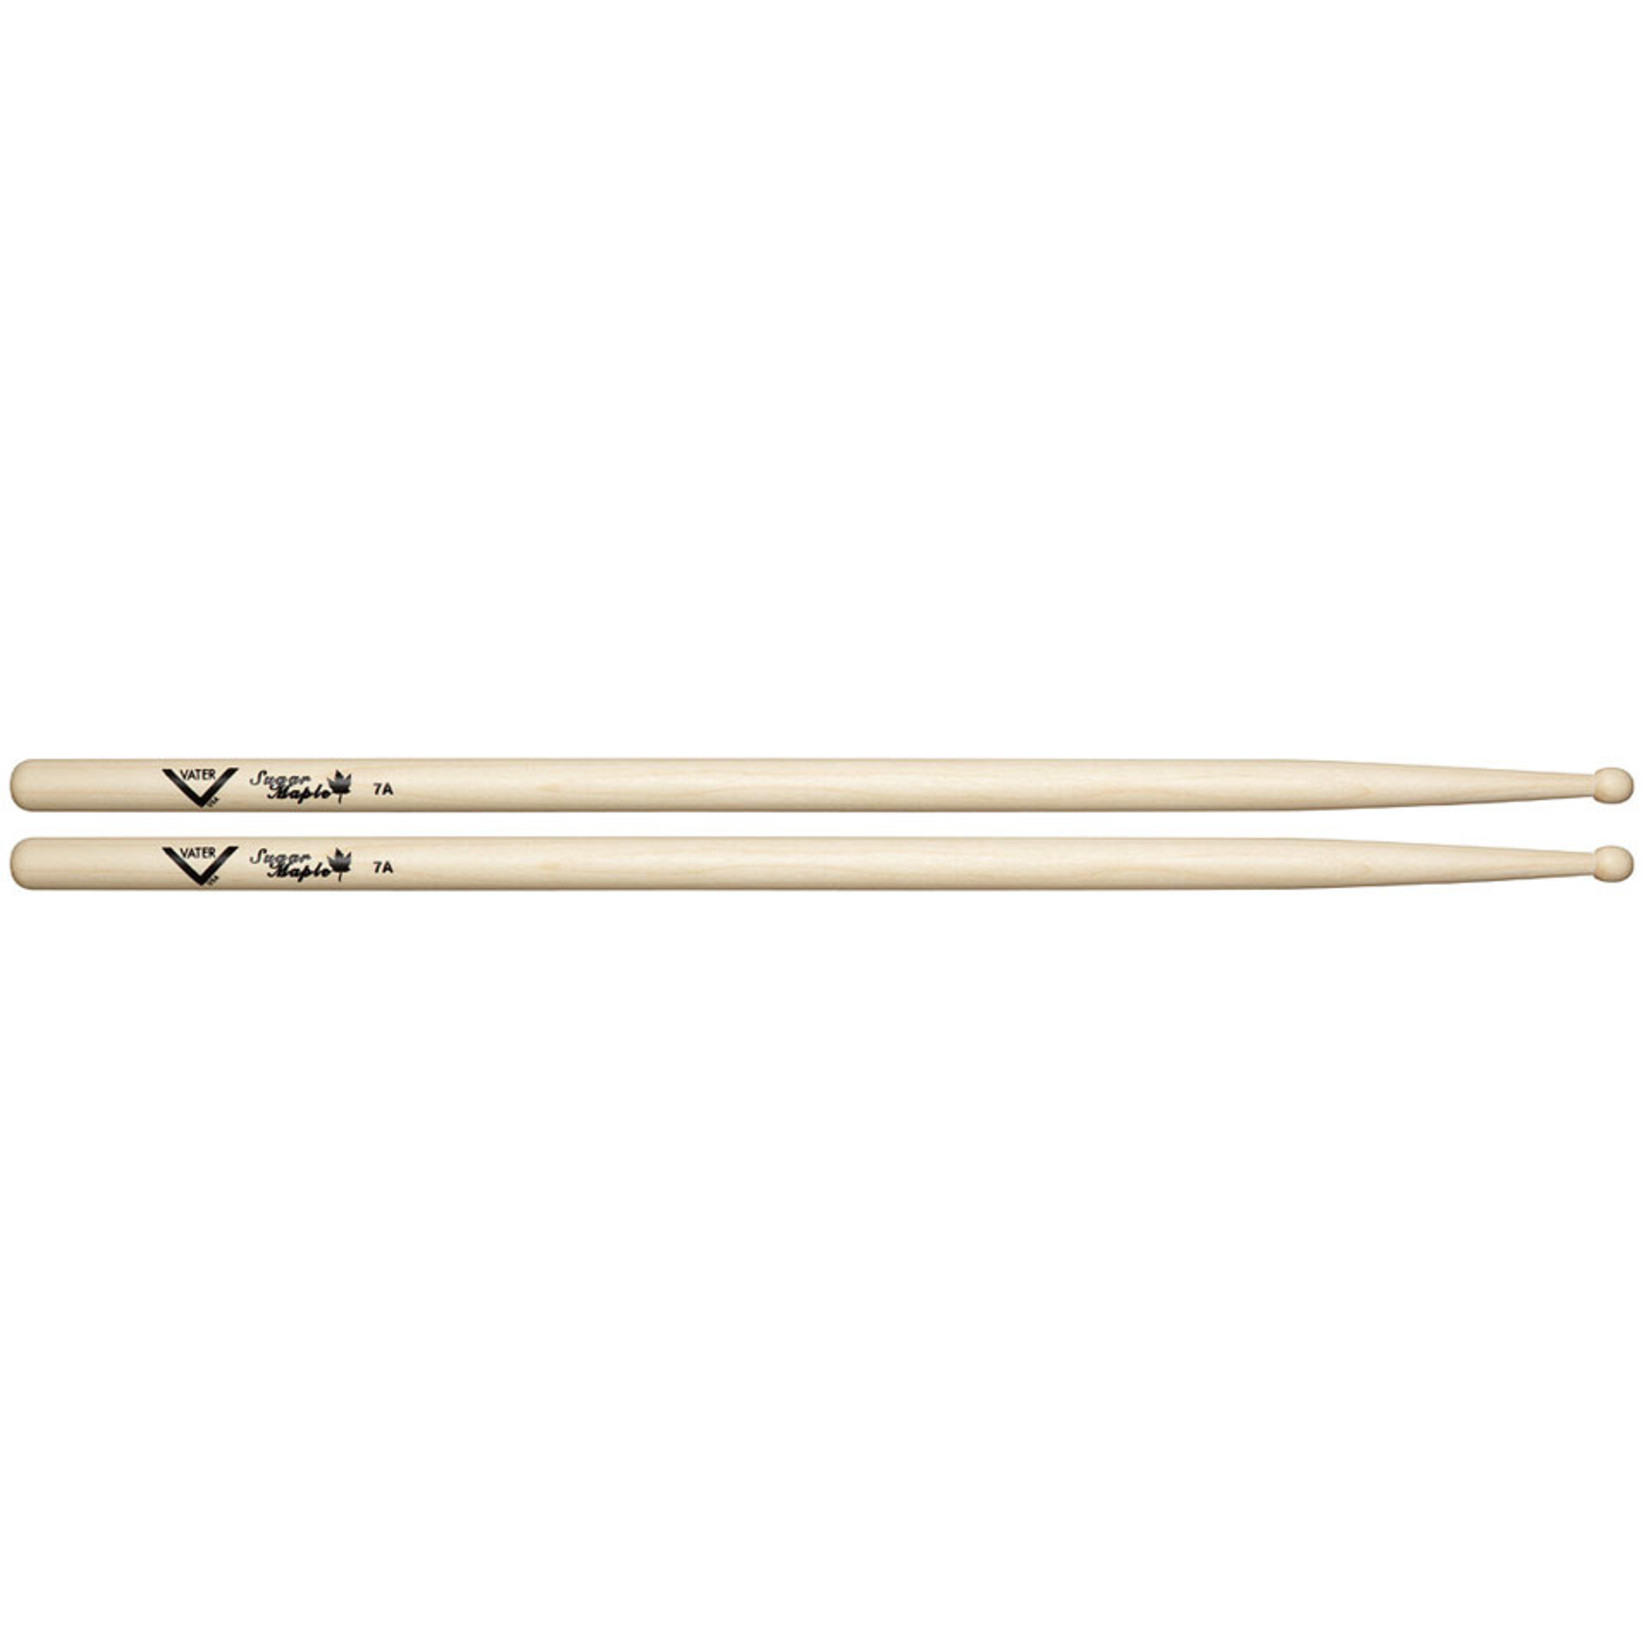 Vater Vater Sugar Maple 7A